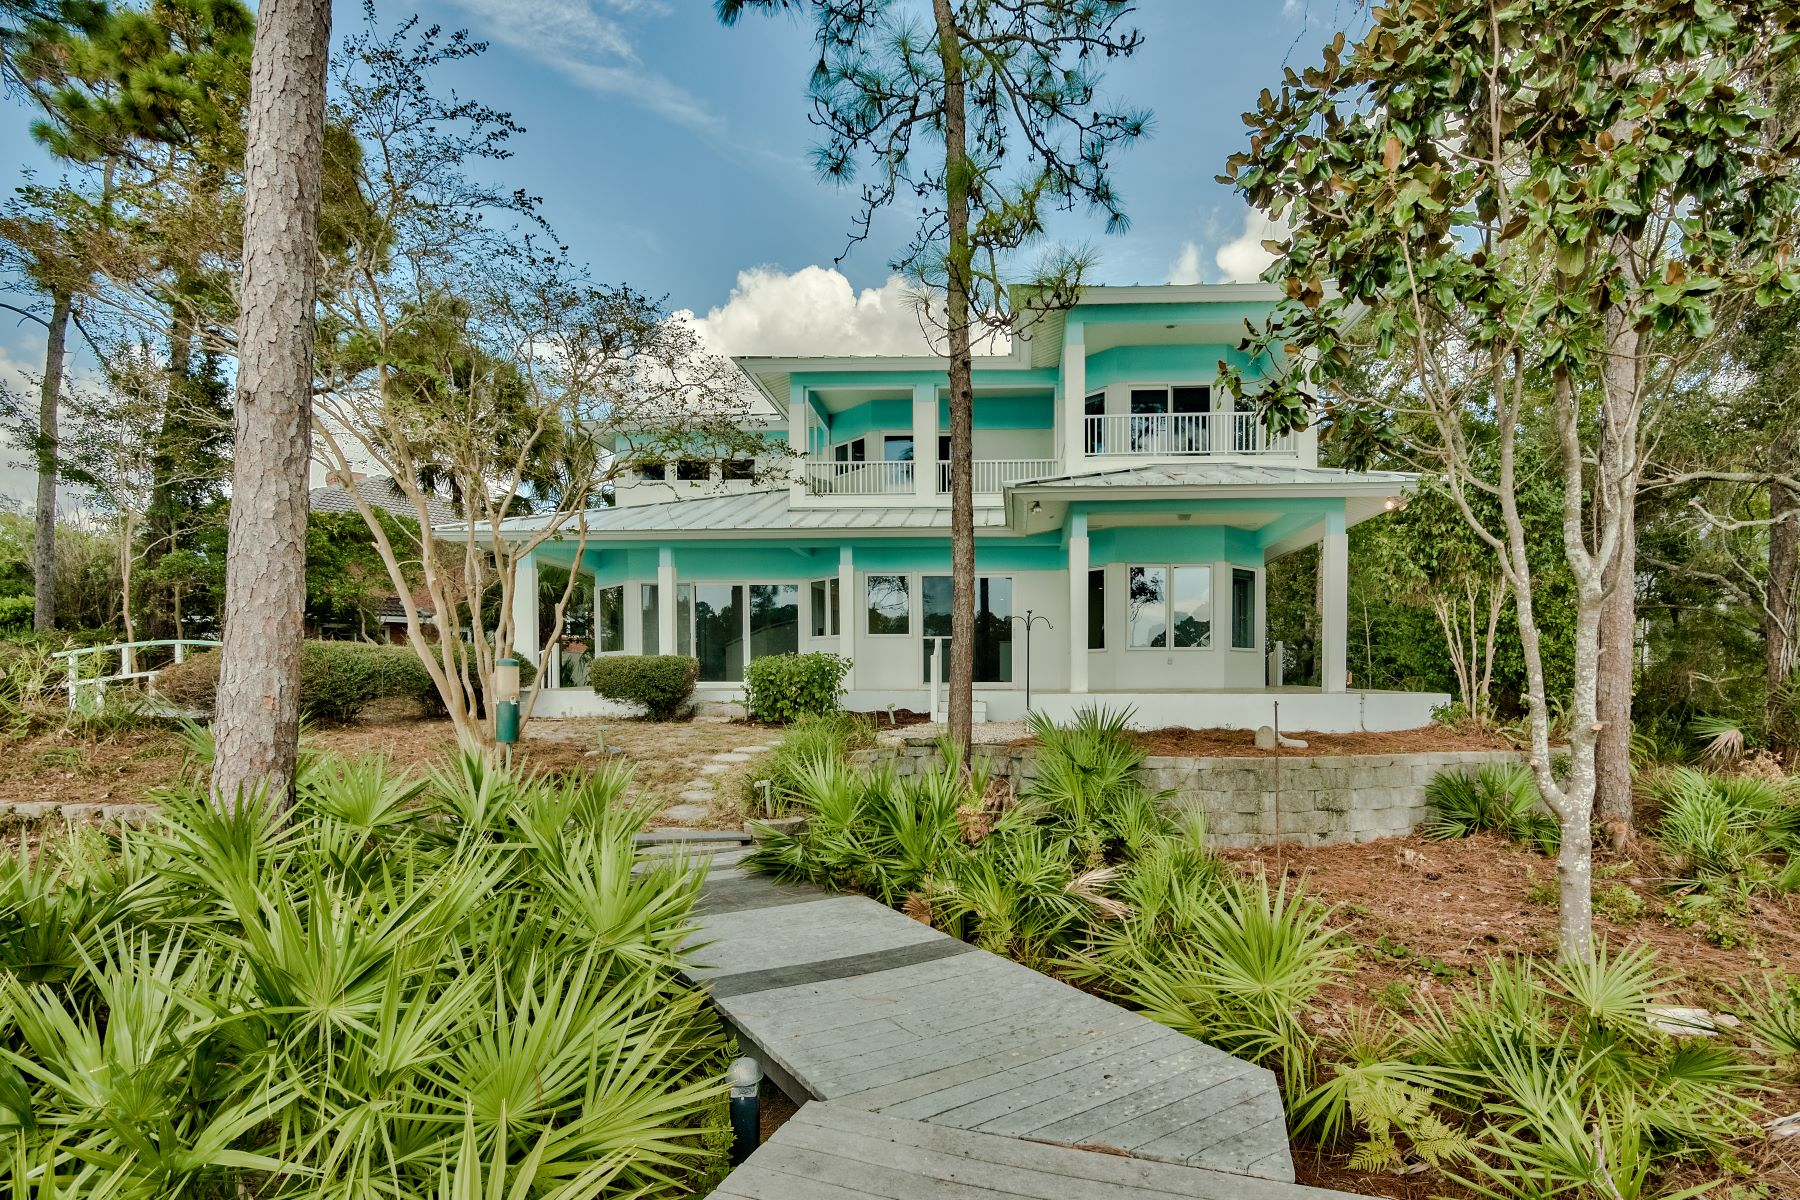 Single Family Homes for Sale at Contemporary Waterfront Home with Private Dock in Bluewater Bay 4396 Windlake Drive, Niceville, Florida 32578 United States